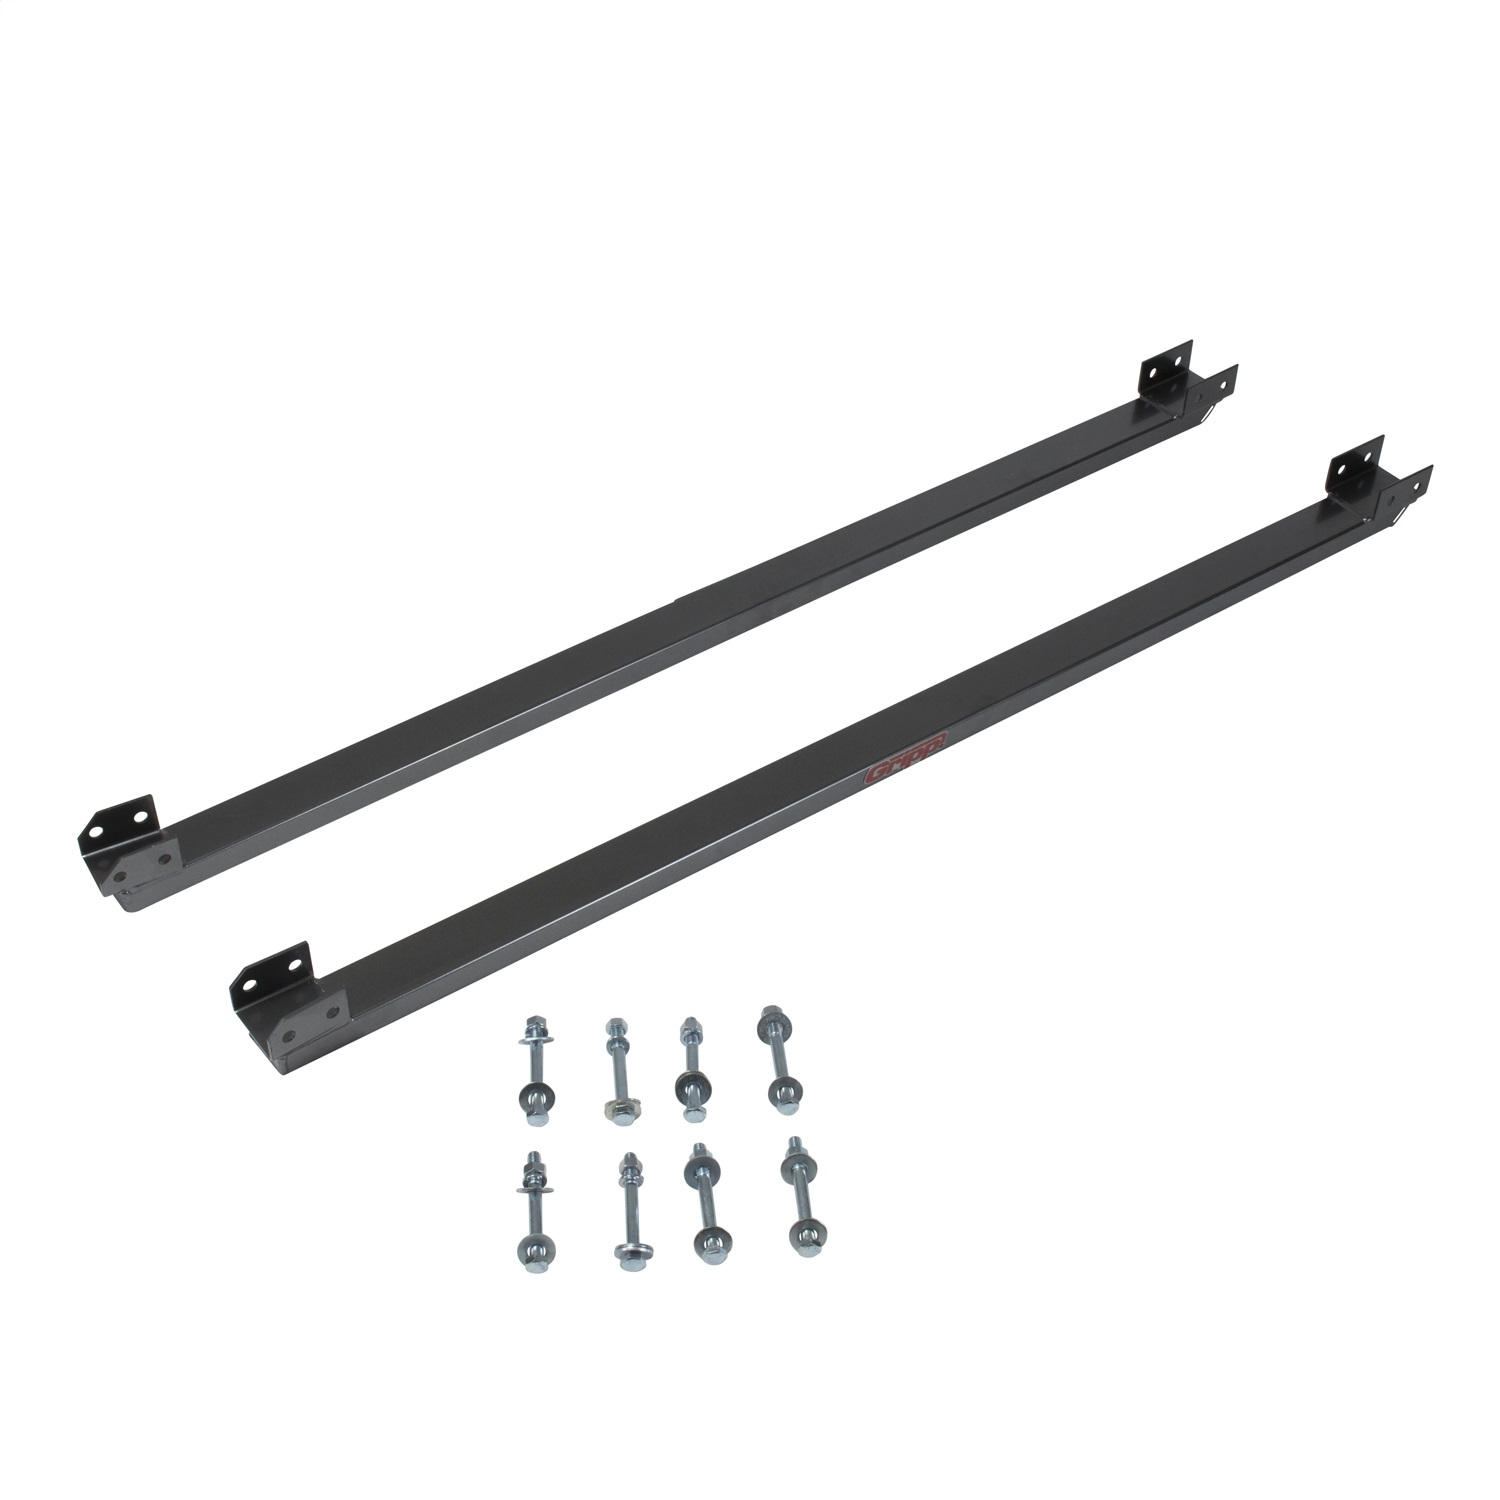 BBK Performance 2520 Gripp Full Length Subframe Connector...